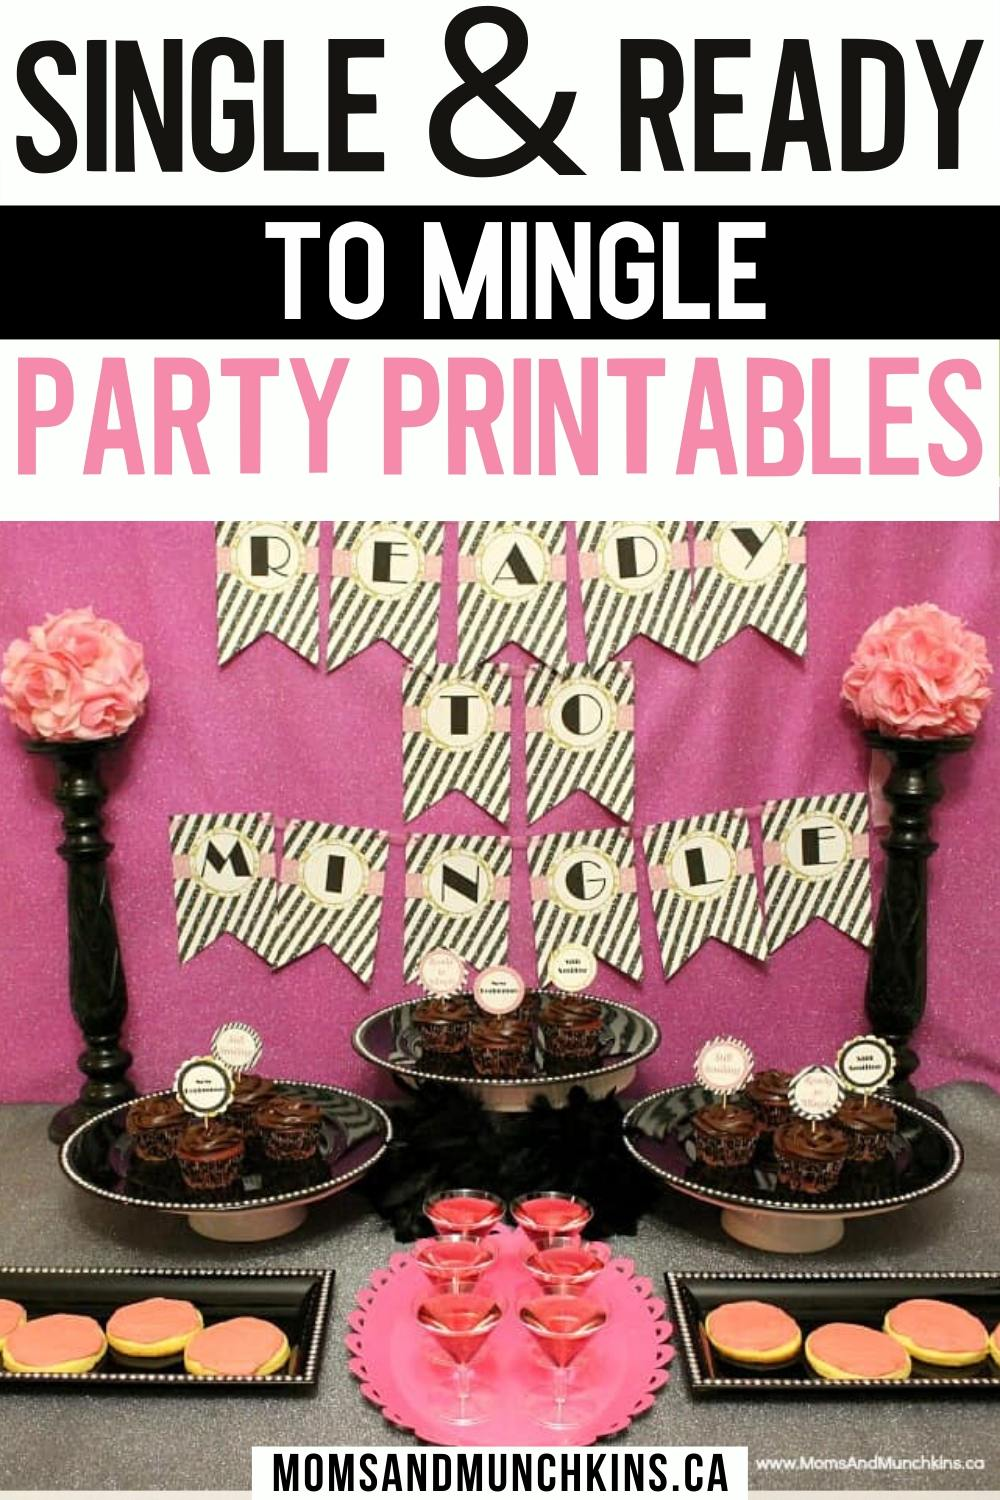 Breakup party Printables